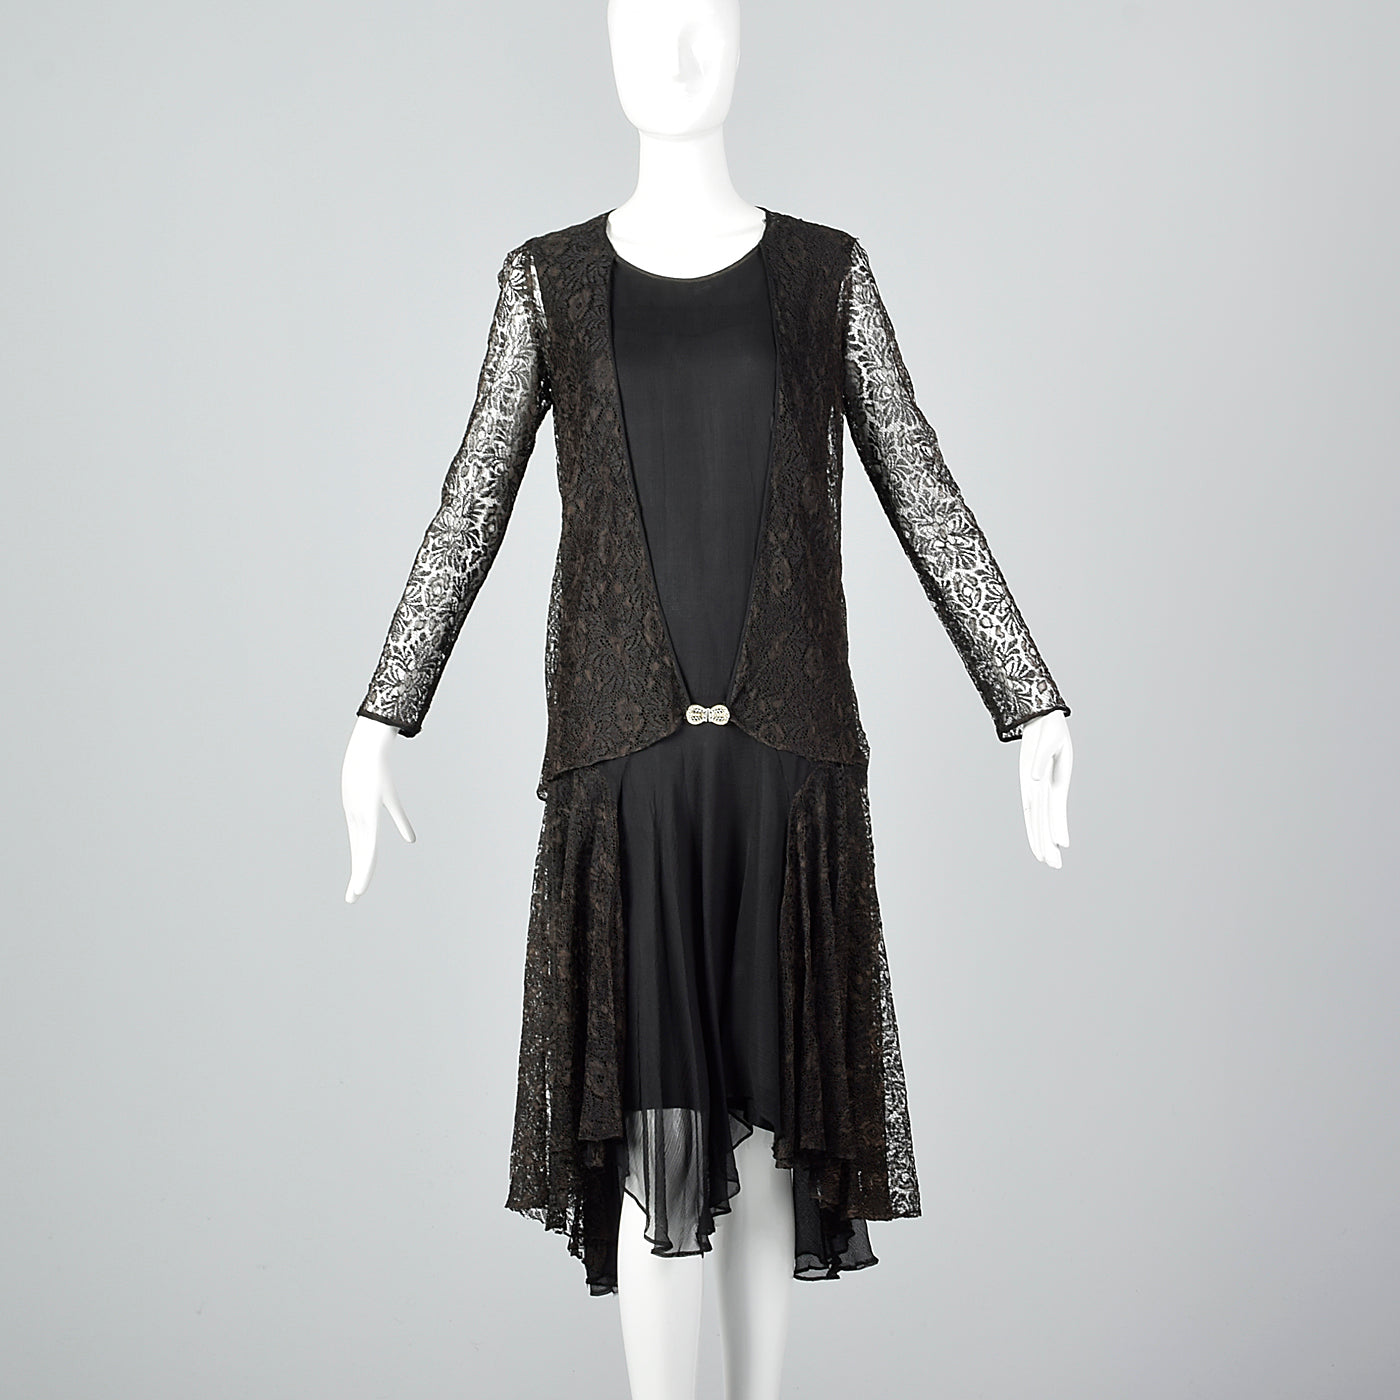 1920s Black Silk Dress with Lace Jacket